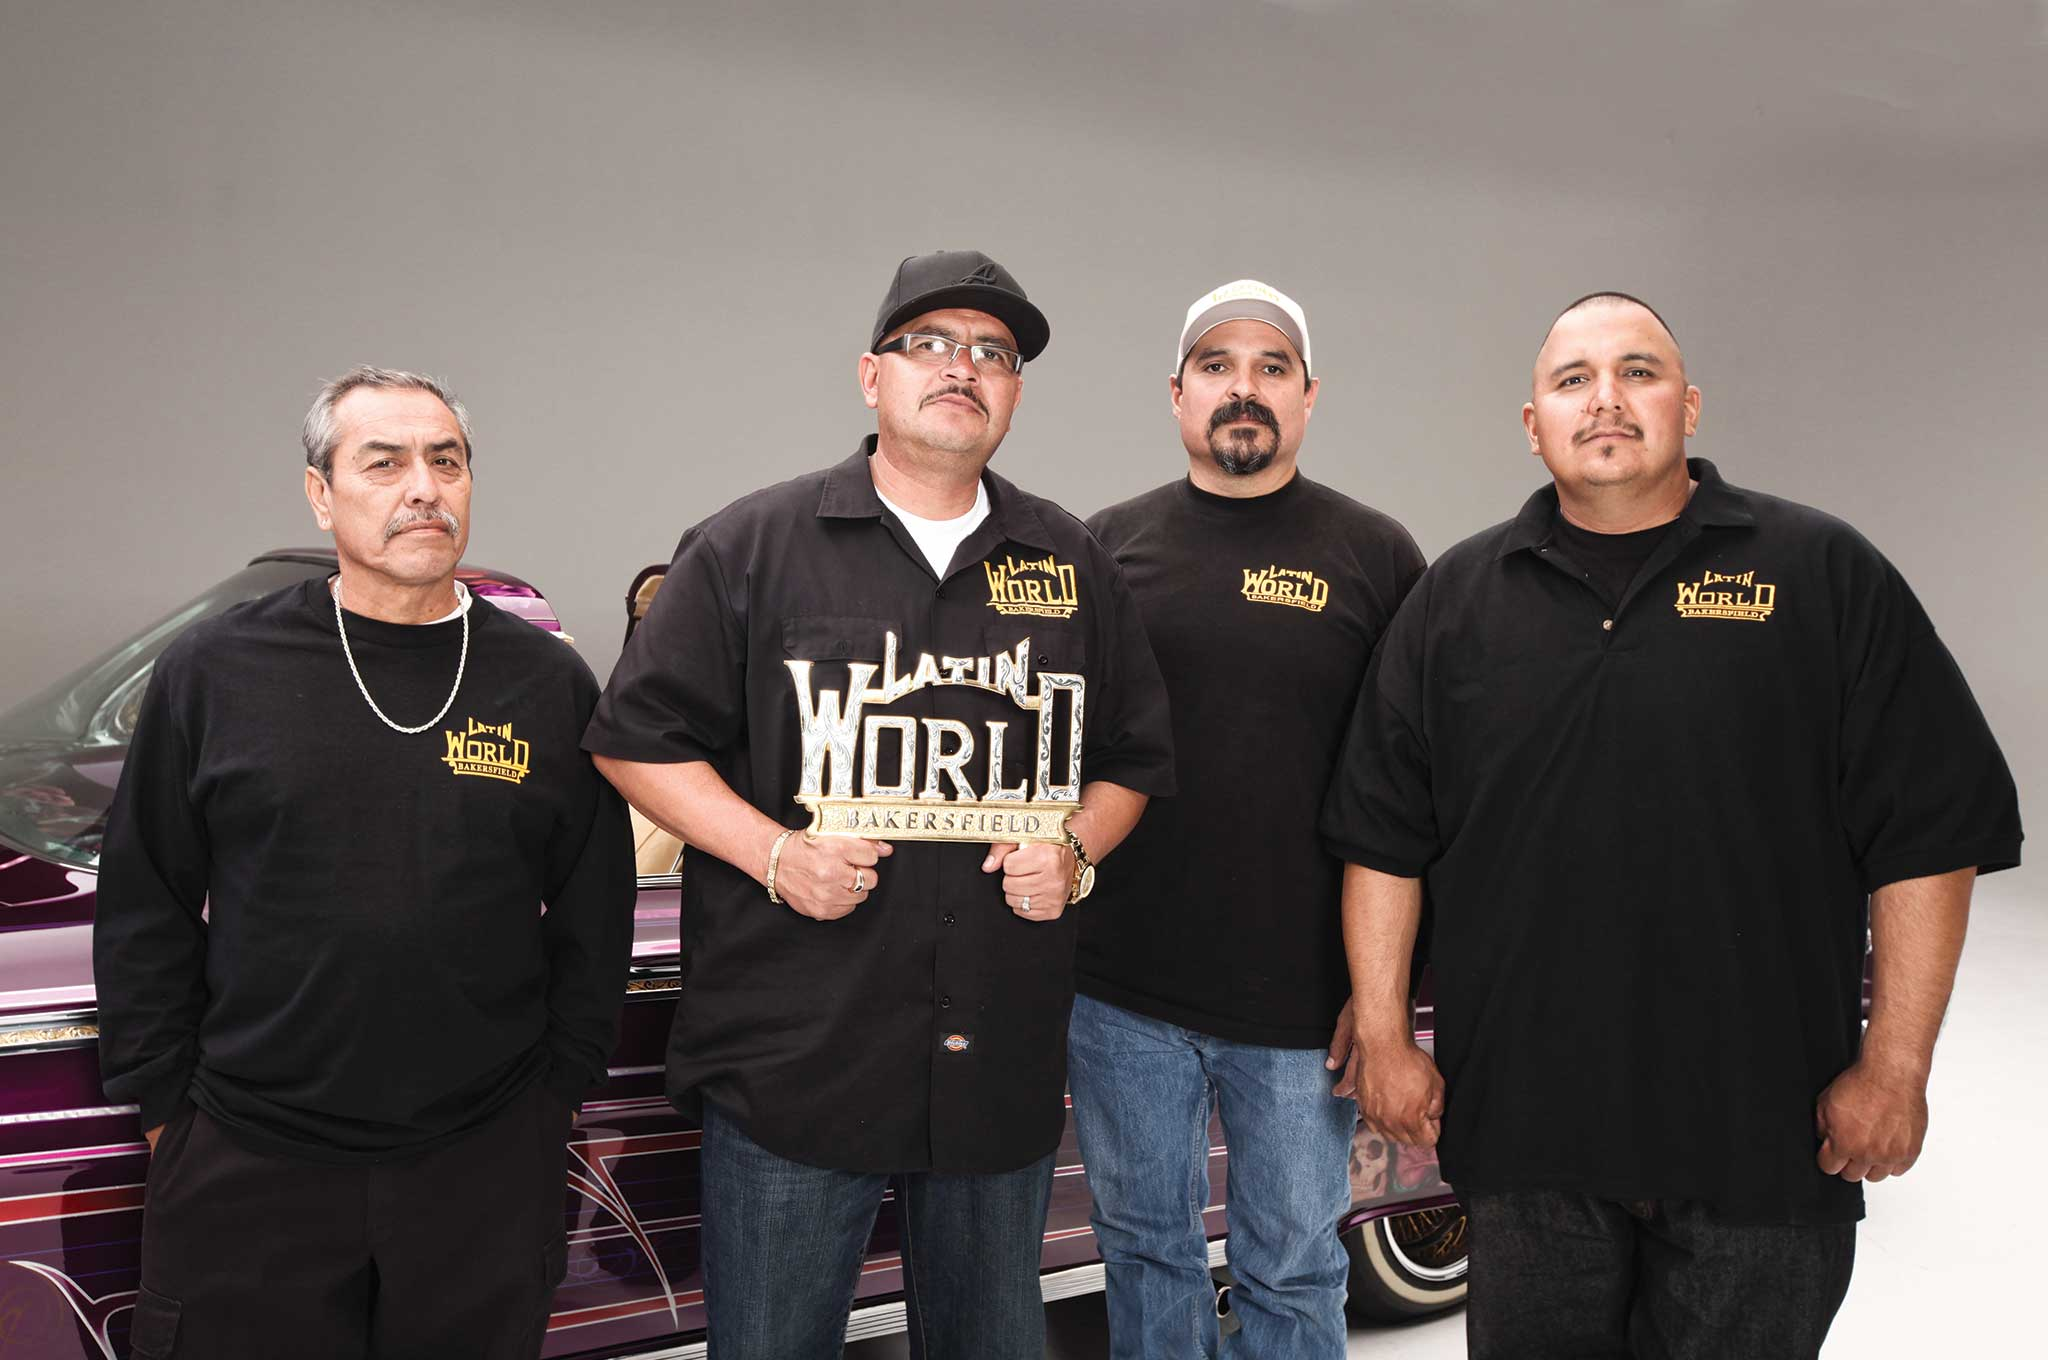 Robert Arreola holds his Latin World plaque up proud among his loyal members.